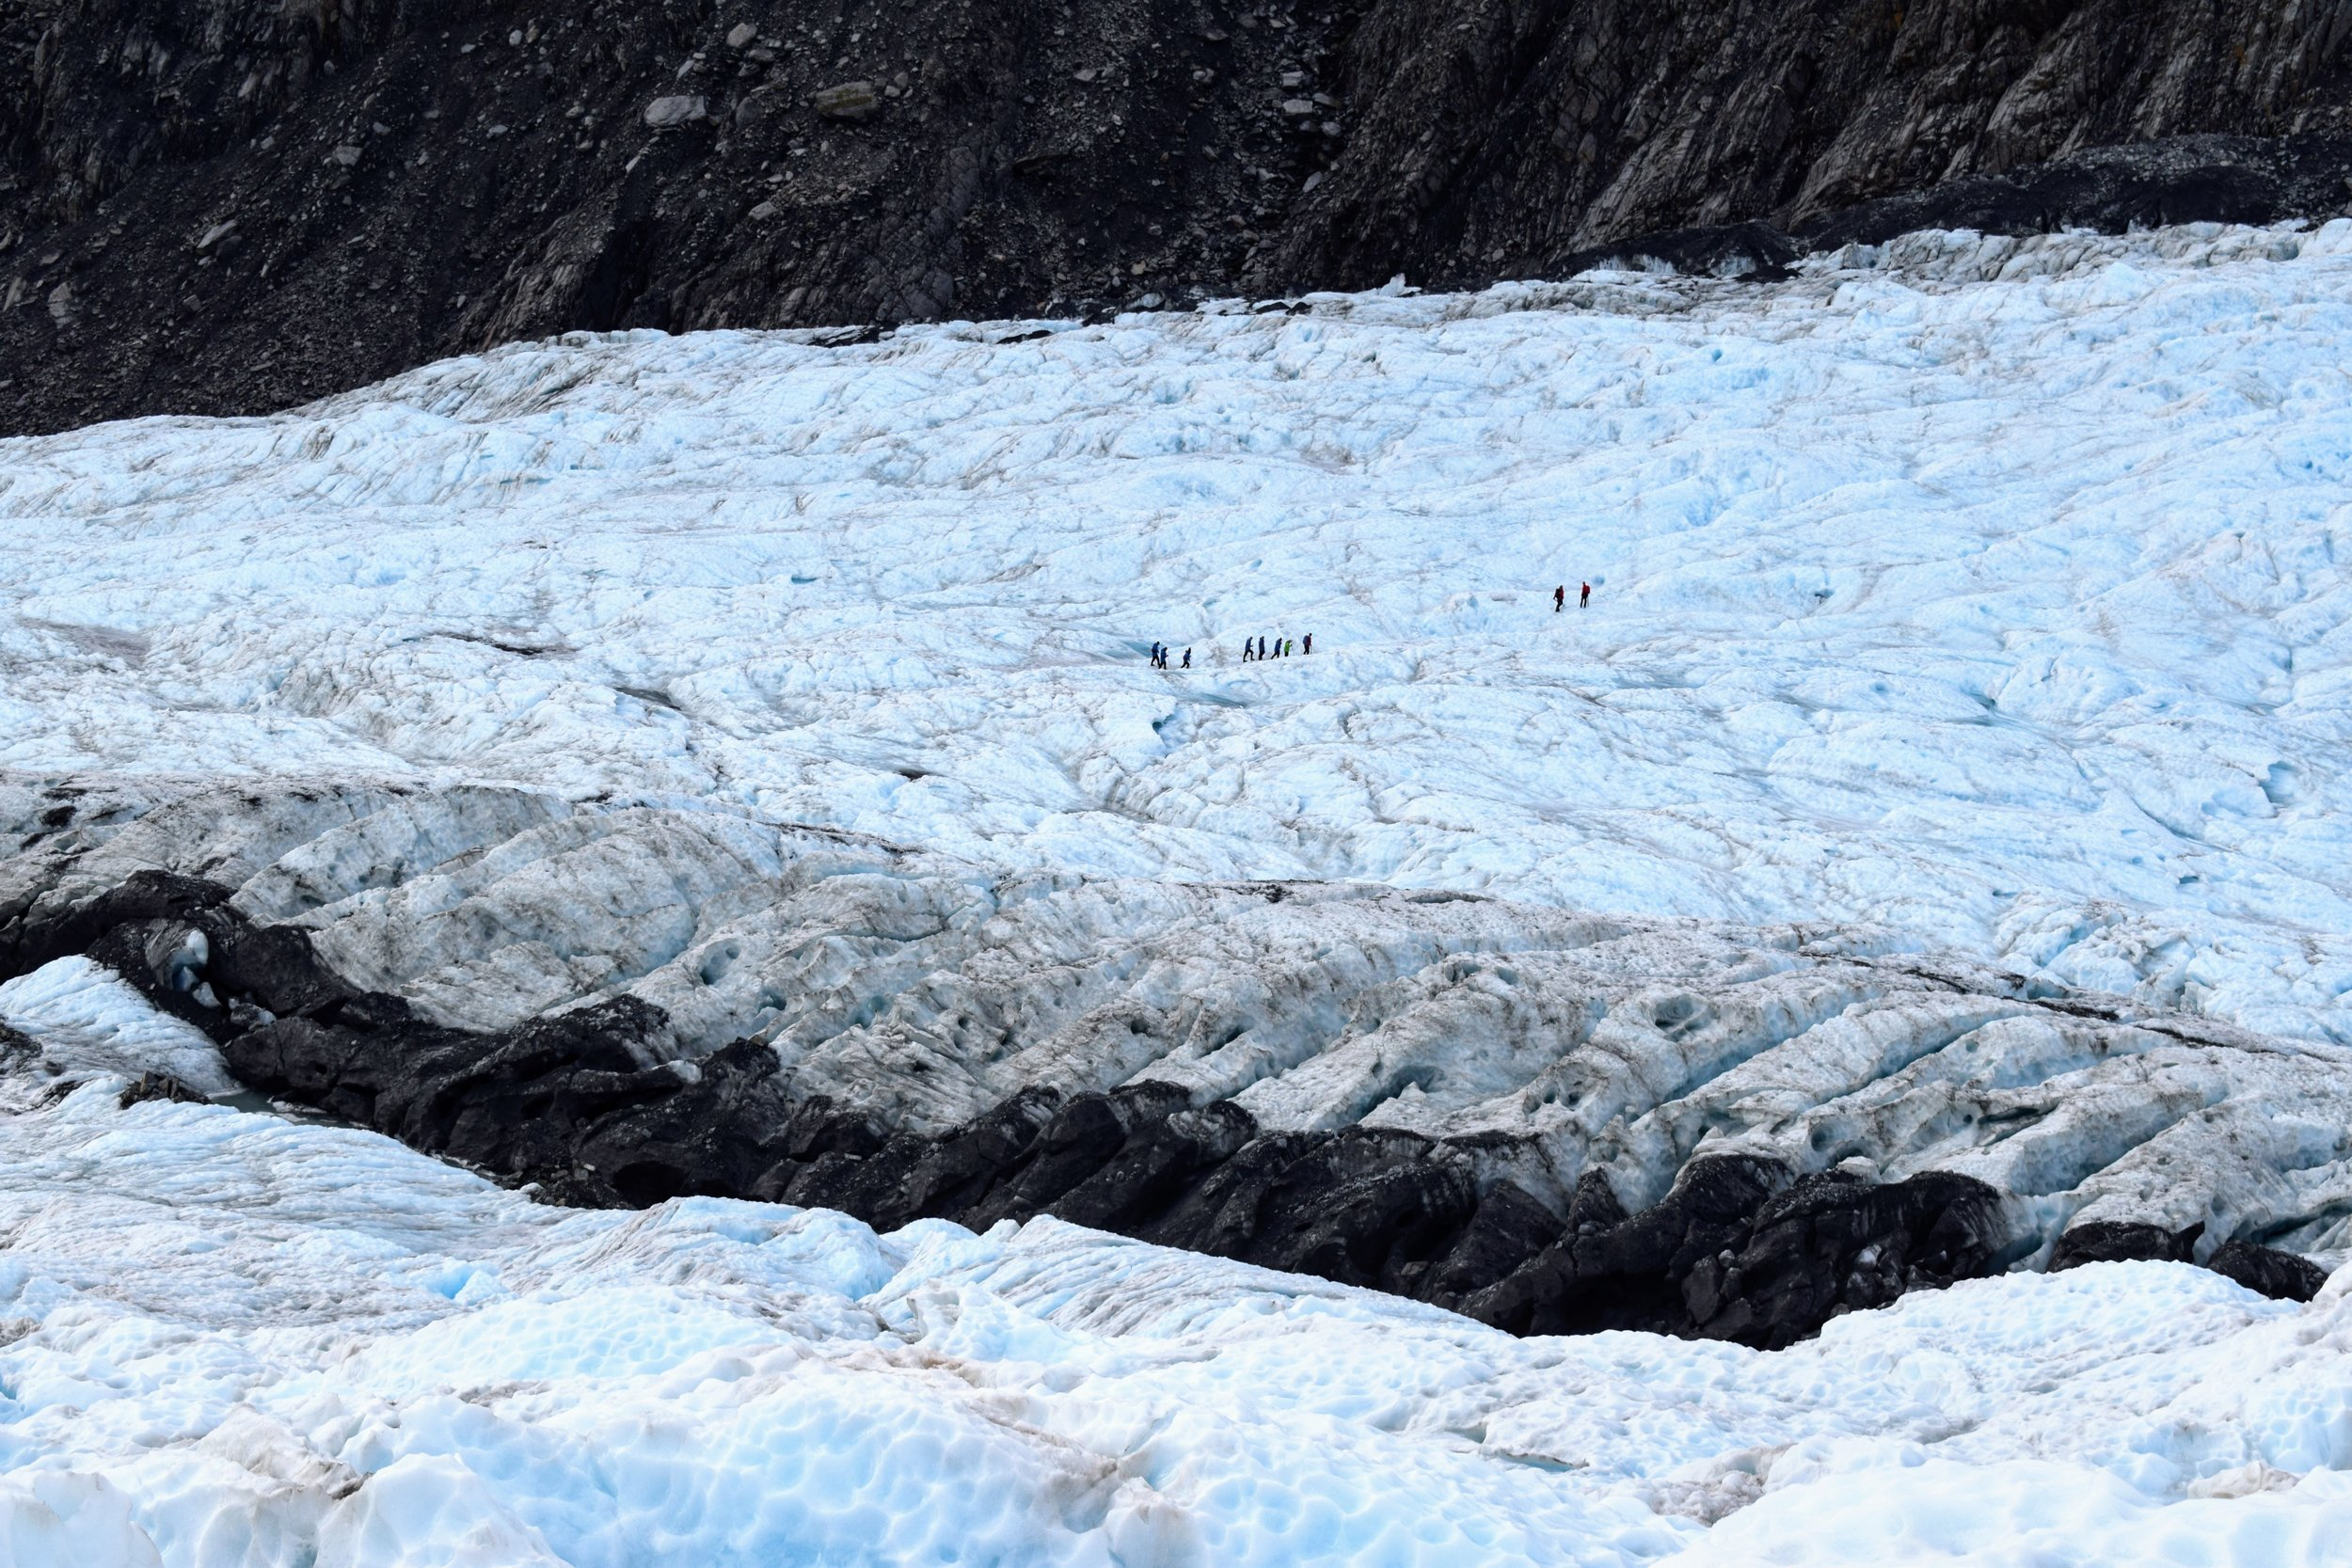 Another group hikes on Franz Josef.